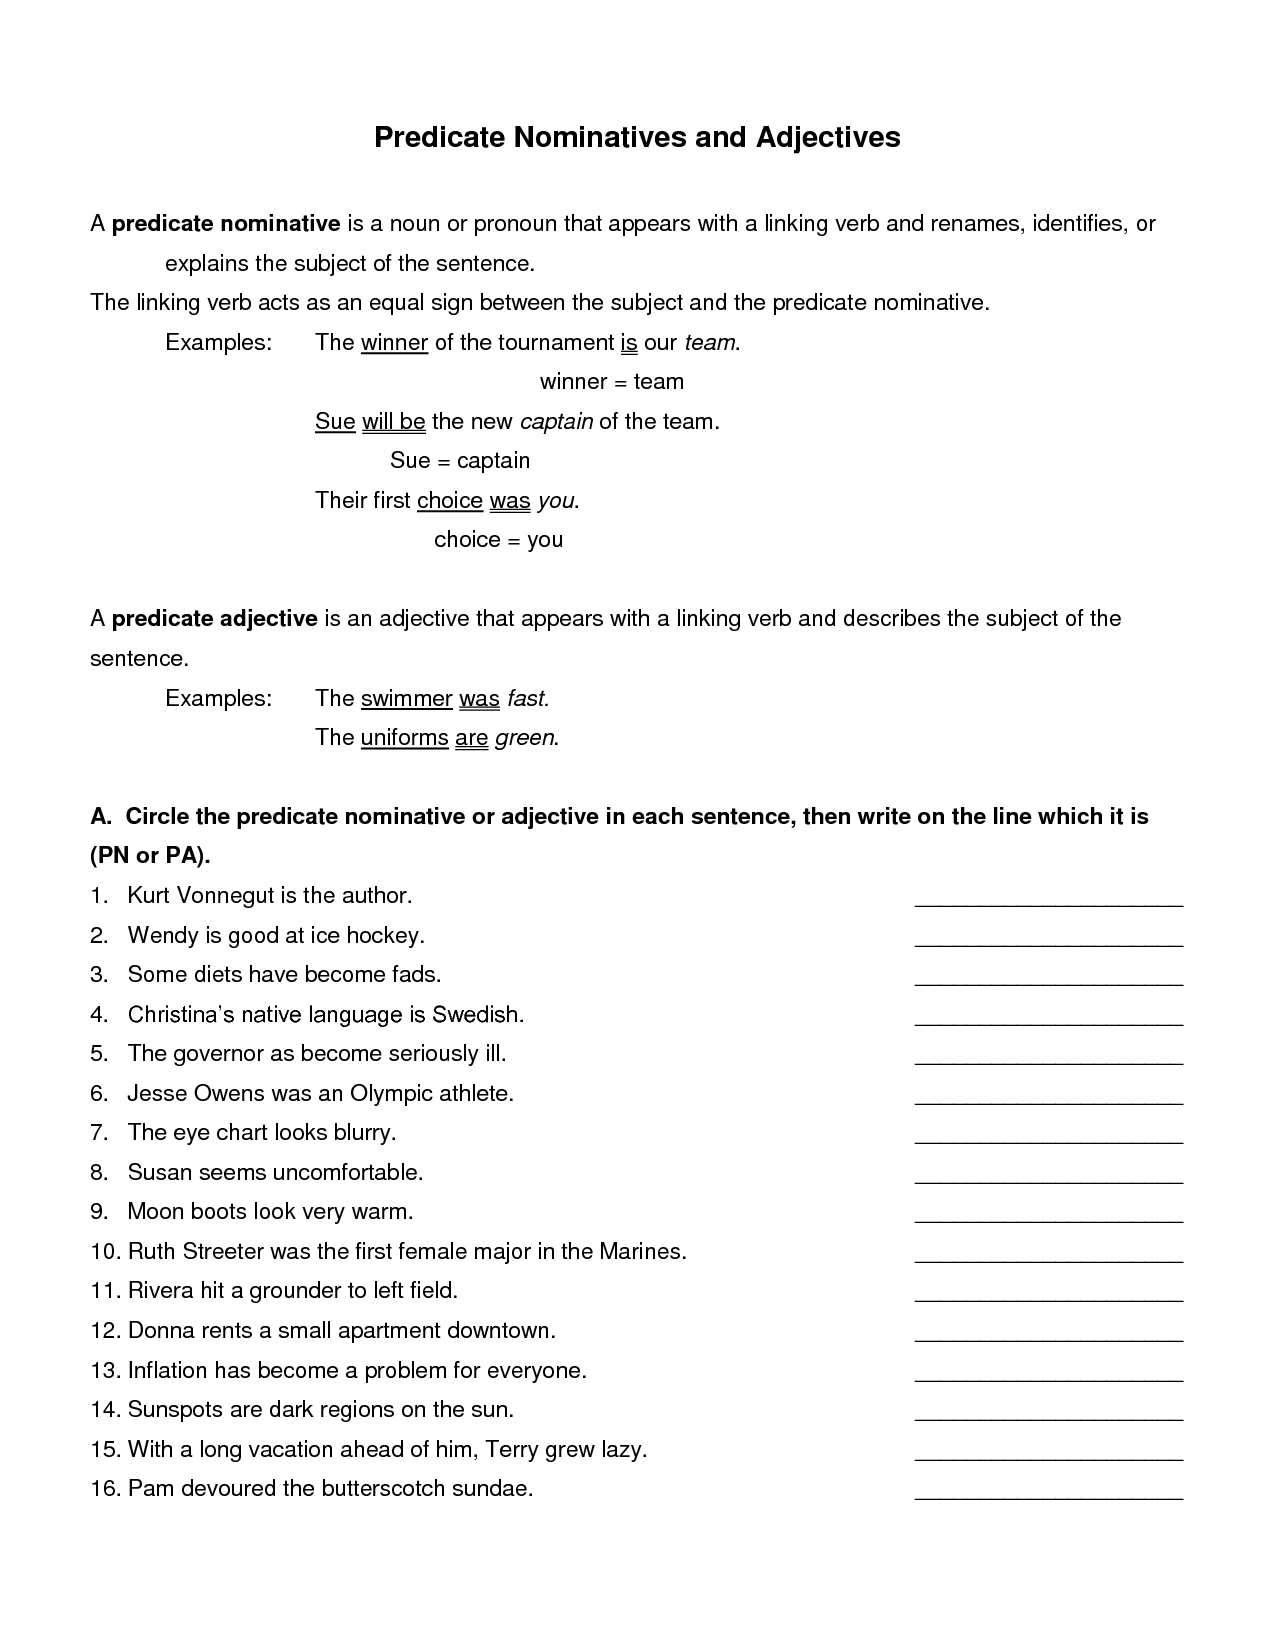 Subject Noun And Predicate Noun Worksheet With Answers Google